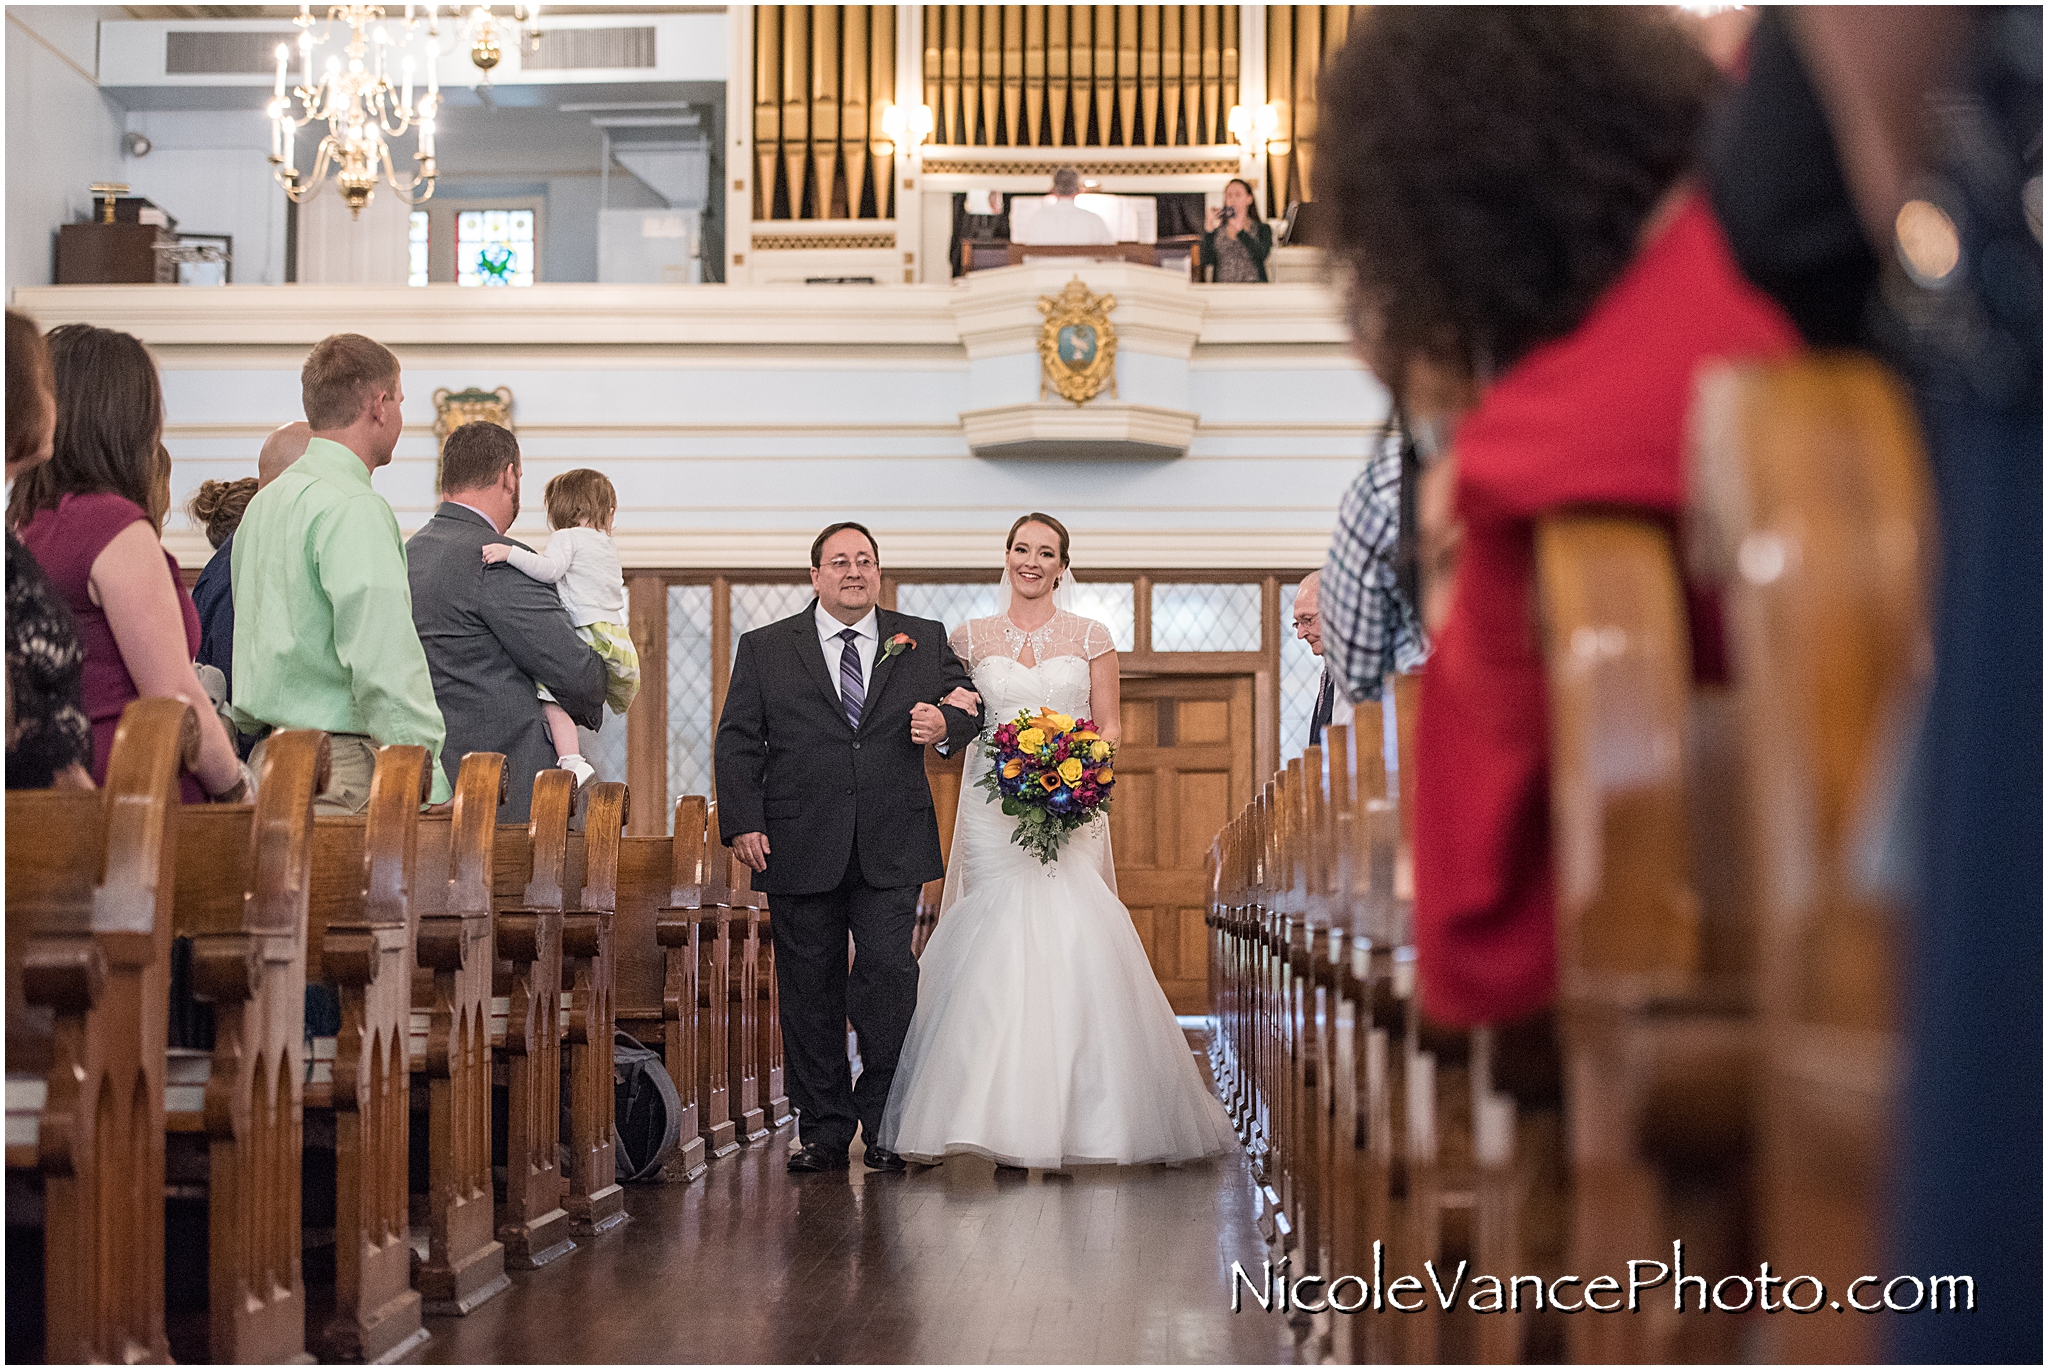 The bride makes an entrance at St Peter's Catholic Church, in Richmond VA.